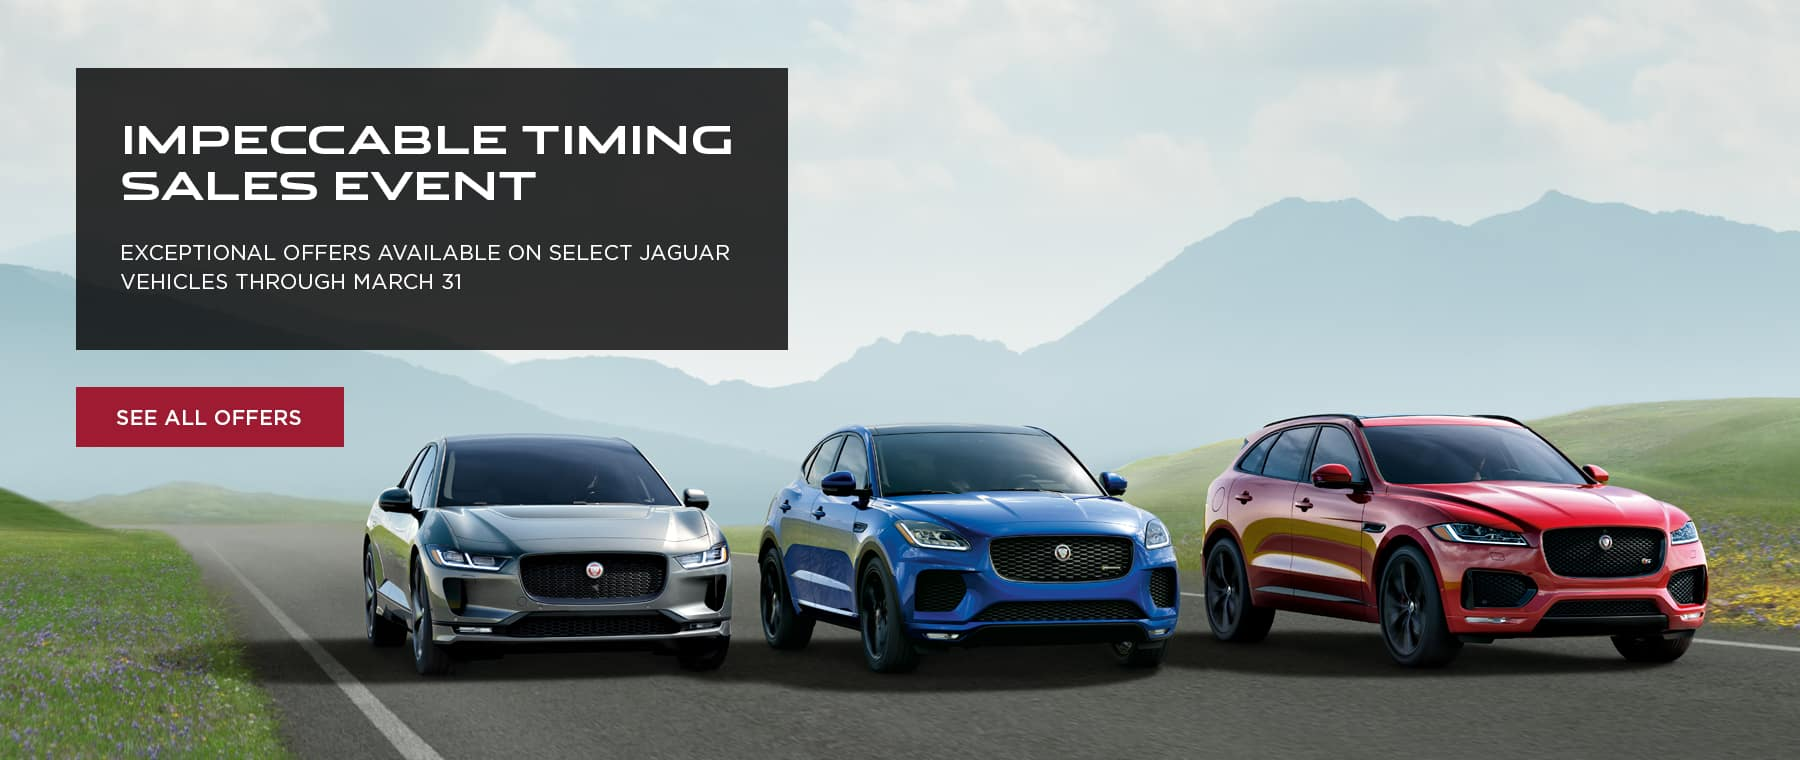 PACE FAMILY LINE UP DRIVING DOWN ROAD SURROUNDED BY GREEN GRASS AND MOUNTAINS IN BACKGROUND. IMPECCABLE TIMING SALES EVENT. EXCEPTIONAL OFFERS AVAILABLE ON SELECT JAGUAR VEHICLES THROUGH MARCH 31. SEE ALL OFFERS.